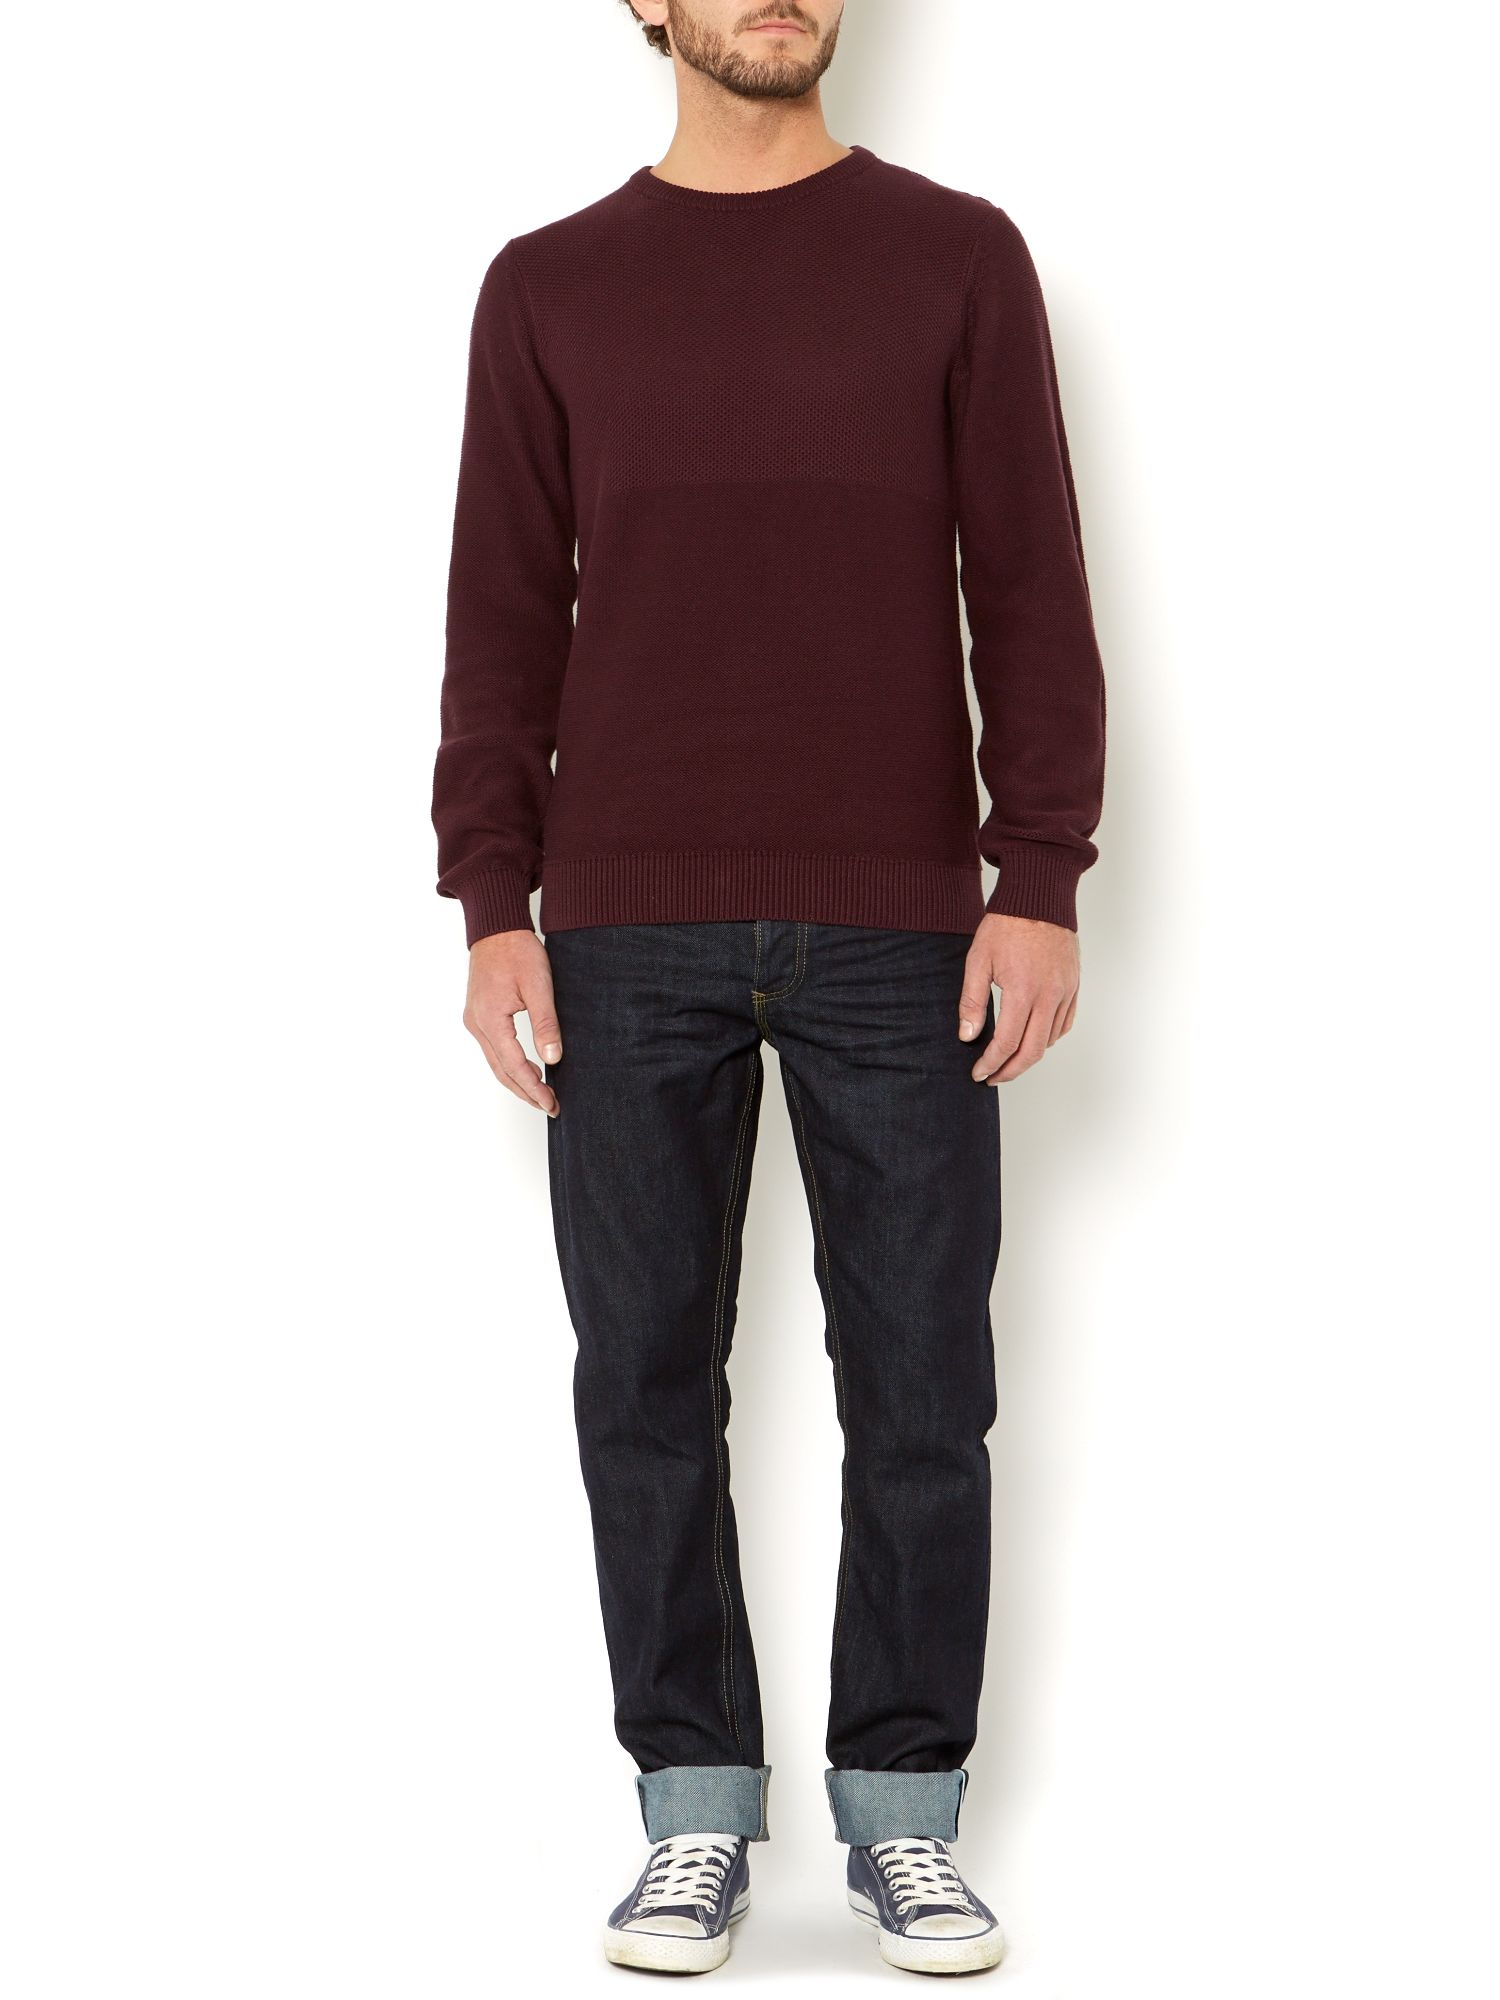 pelham plain textured crew neck knit